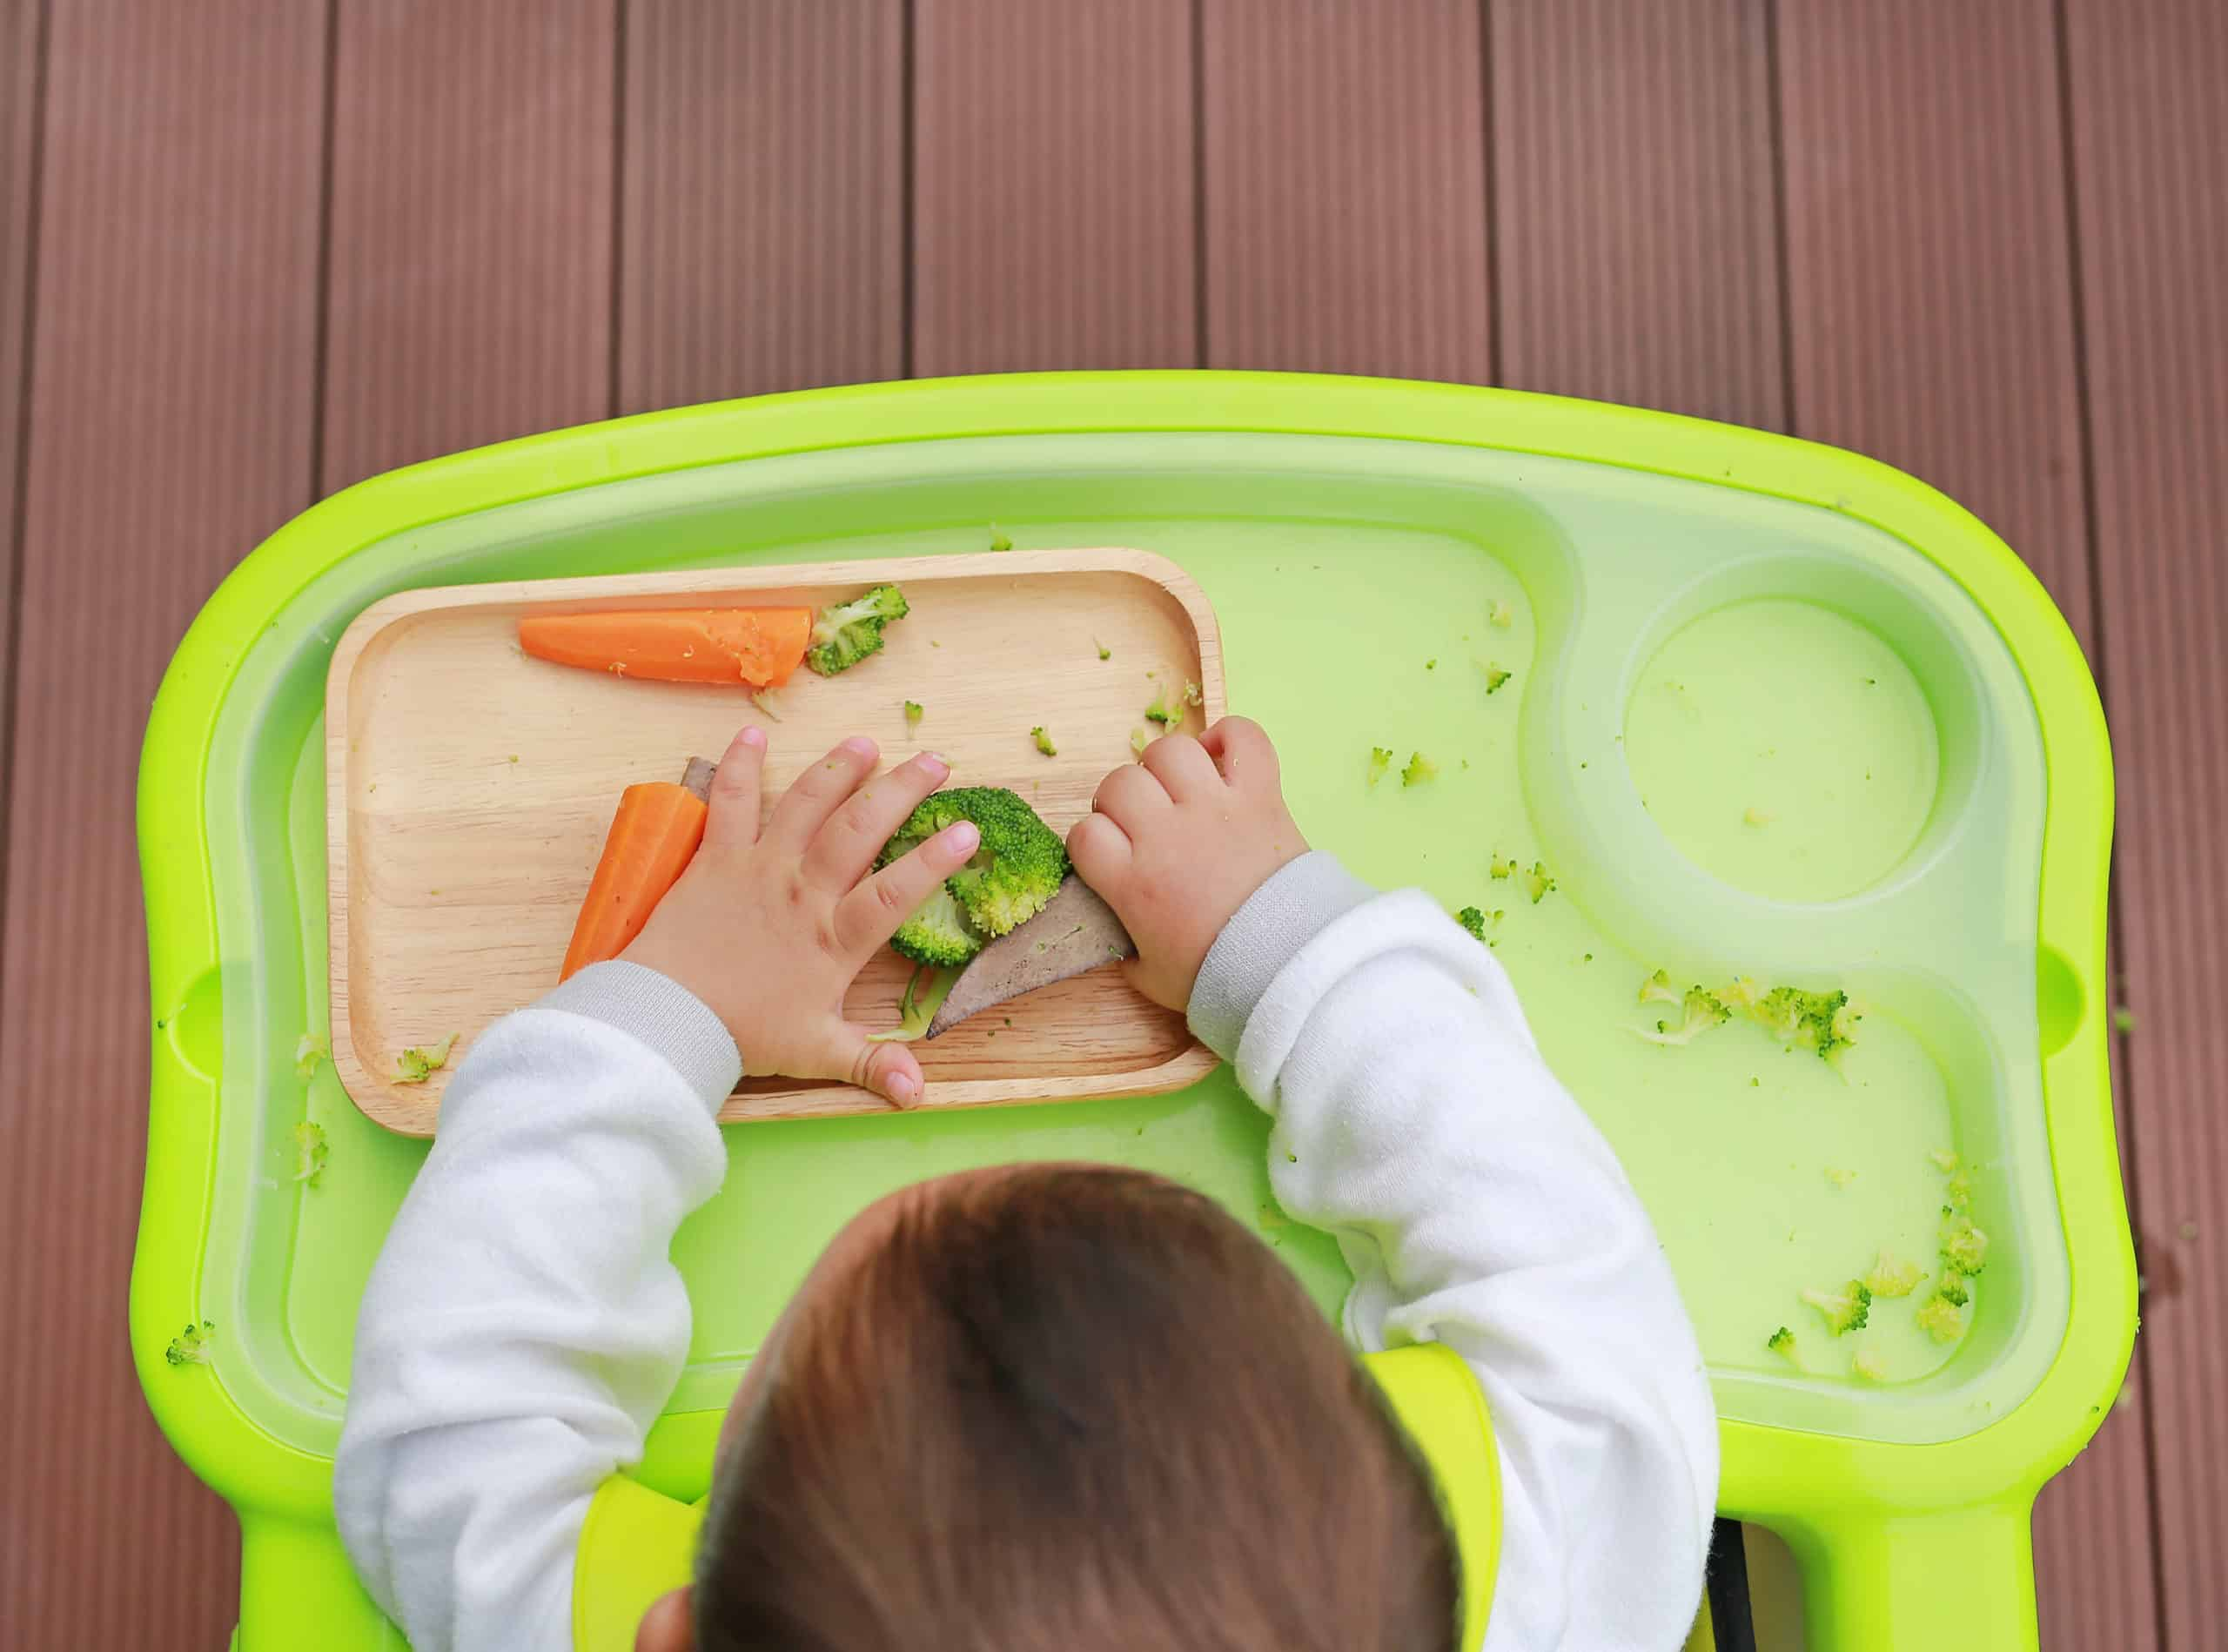 Best Baby-Led Weaning Foods for 6 Months and up